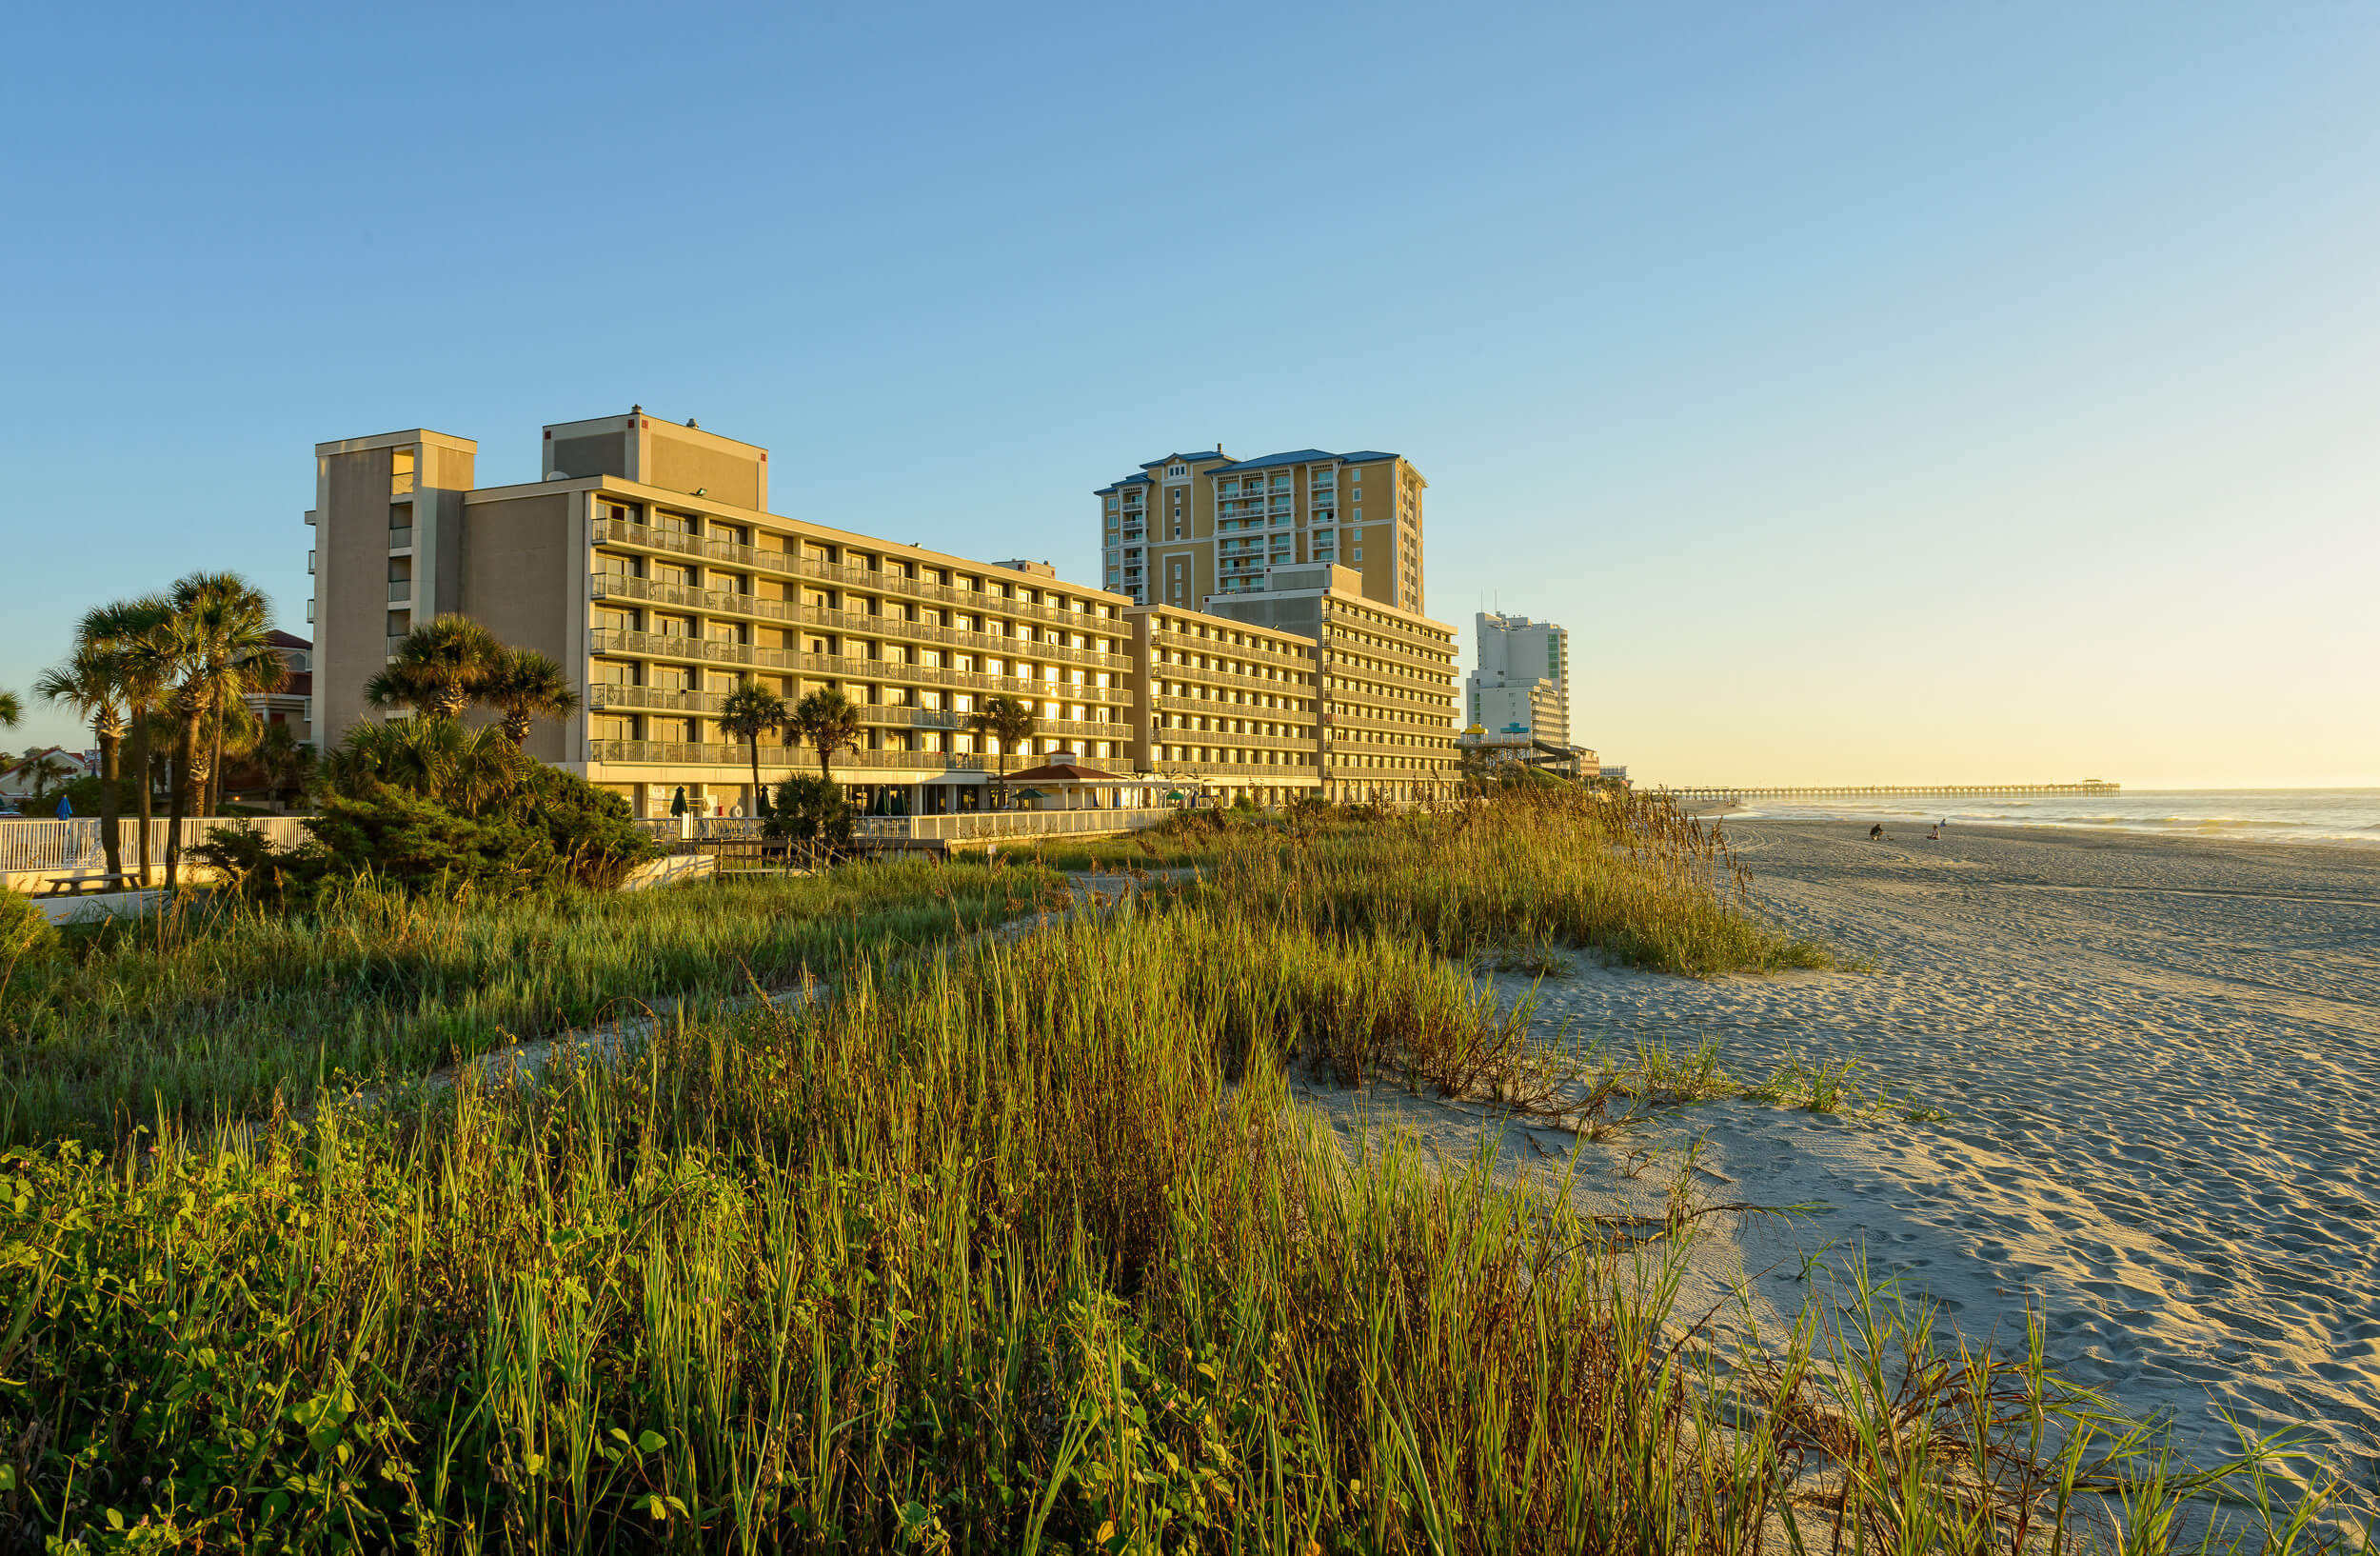 Oceanfront hotels in Myrtle Beach South Carolina   Westgate Myrtle Beach Oceanfront Resort   Westgate Resorts